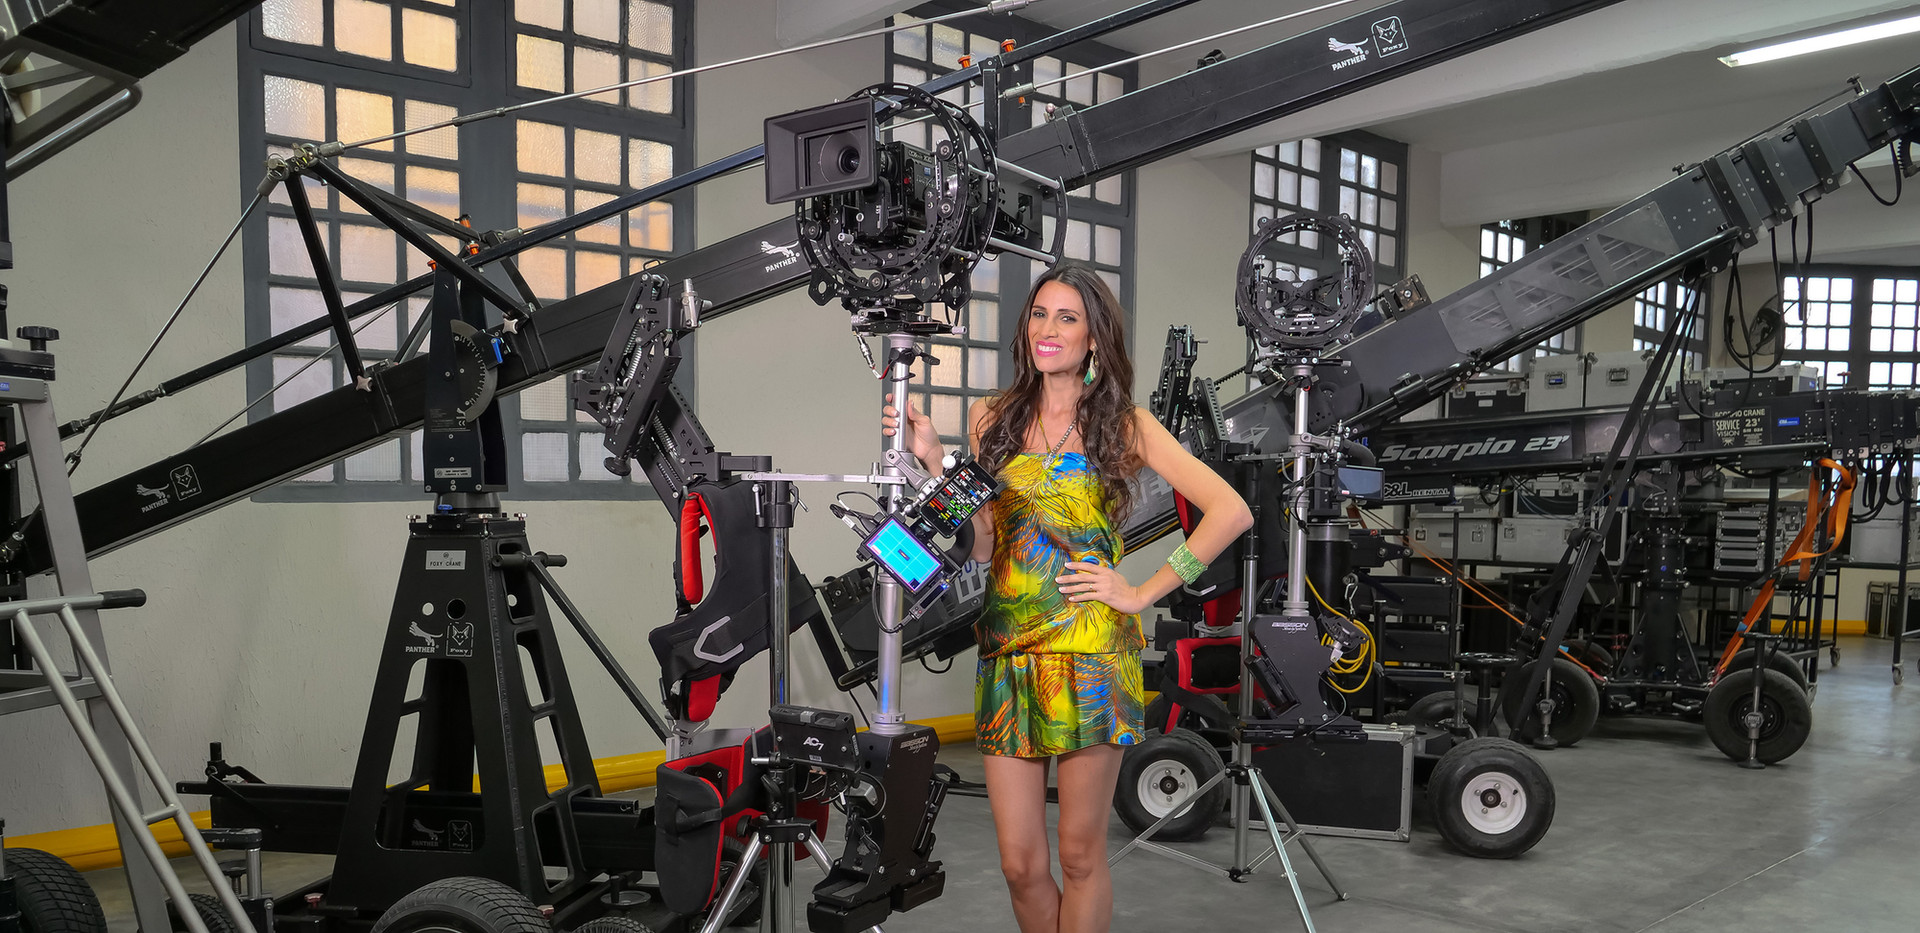 Red camera Helium 8k on 8 axis hybrid camera stabilizer steadycam from Basson Steady model Endless 3 and Infinia 3